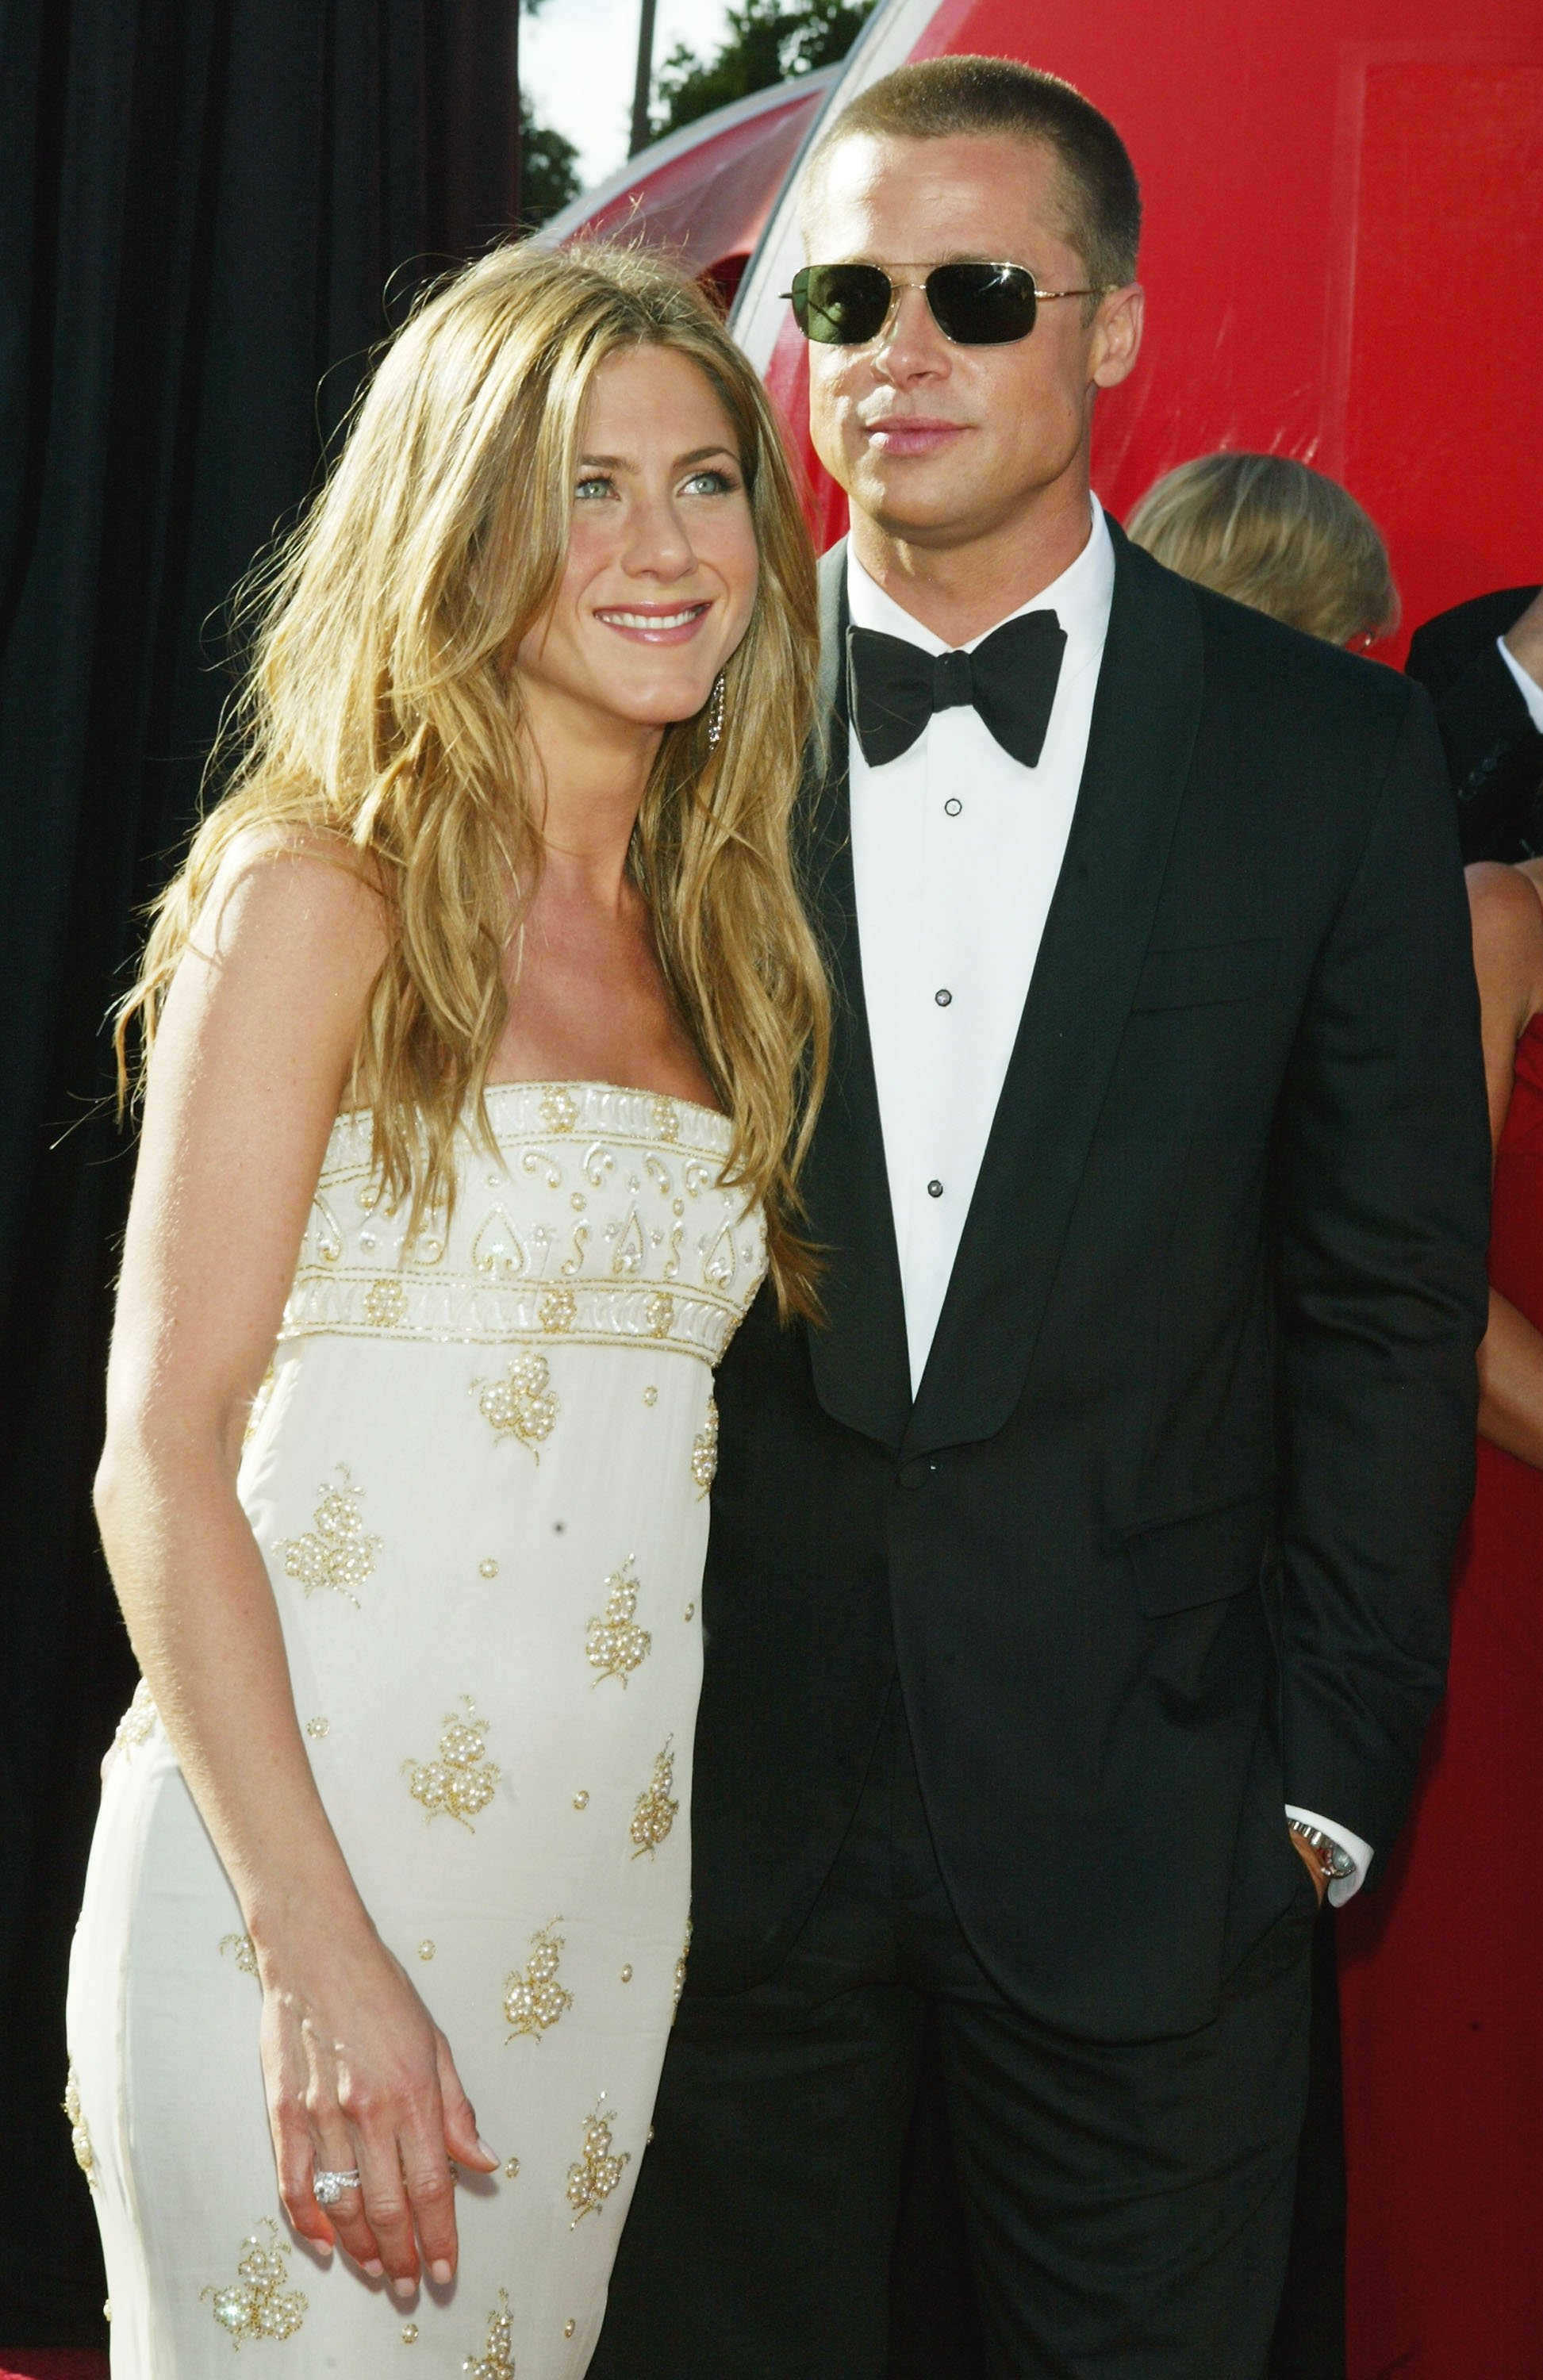 Jennifer Aniston and Brad Pitt attend the 56th Annual Primetime Emmy Awards at the Shrine Auditorium September 19, 2004. | Source: Getty Images